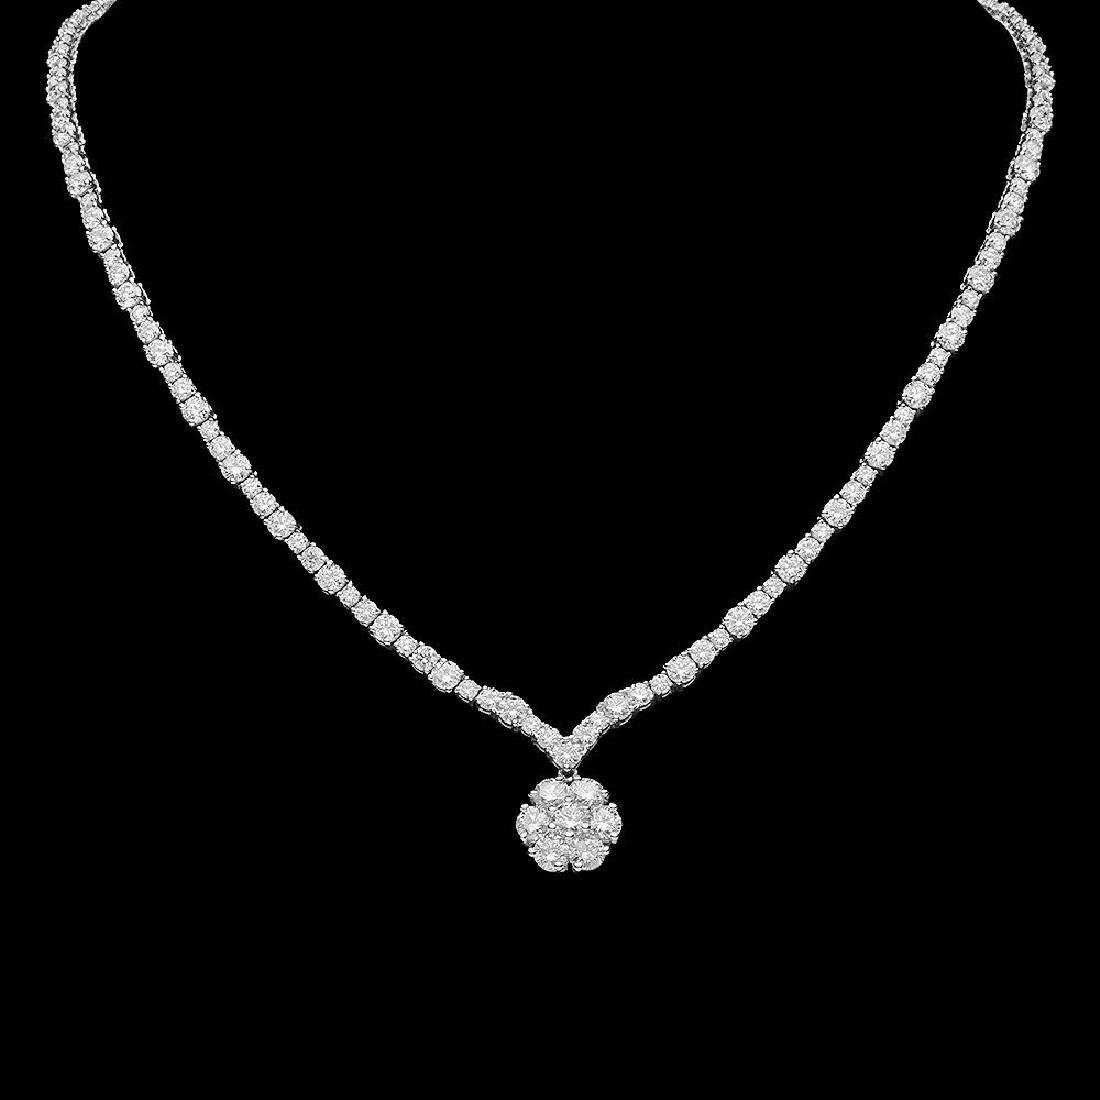 18K Gold 15.79ct Diamond Necklace